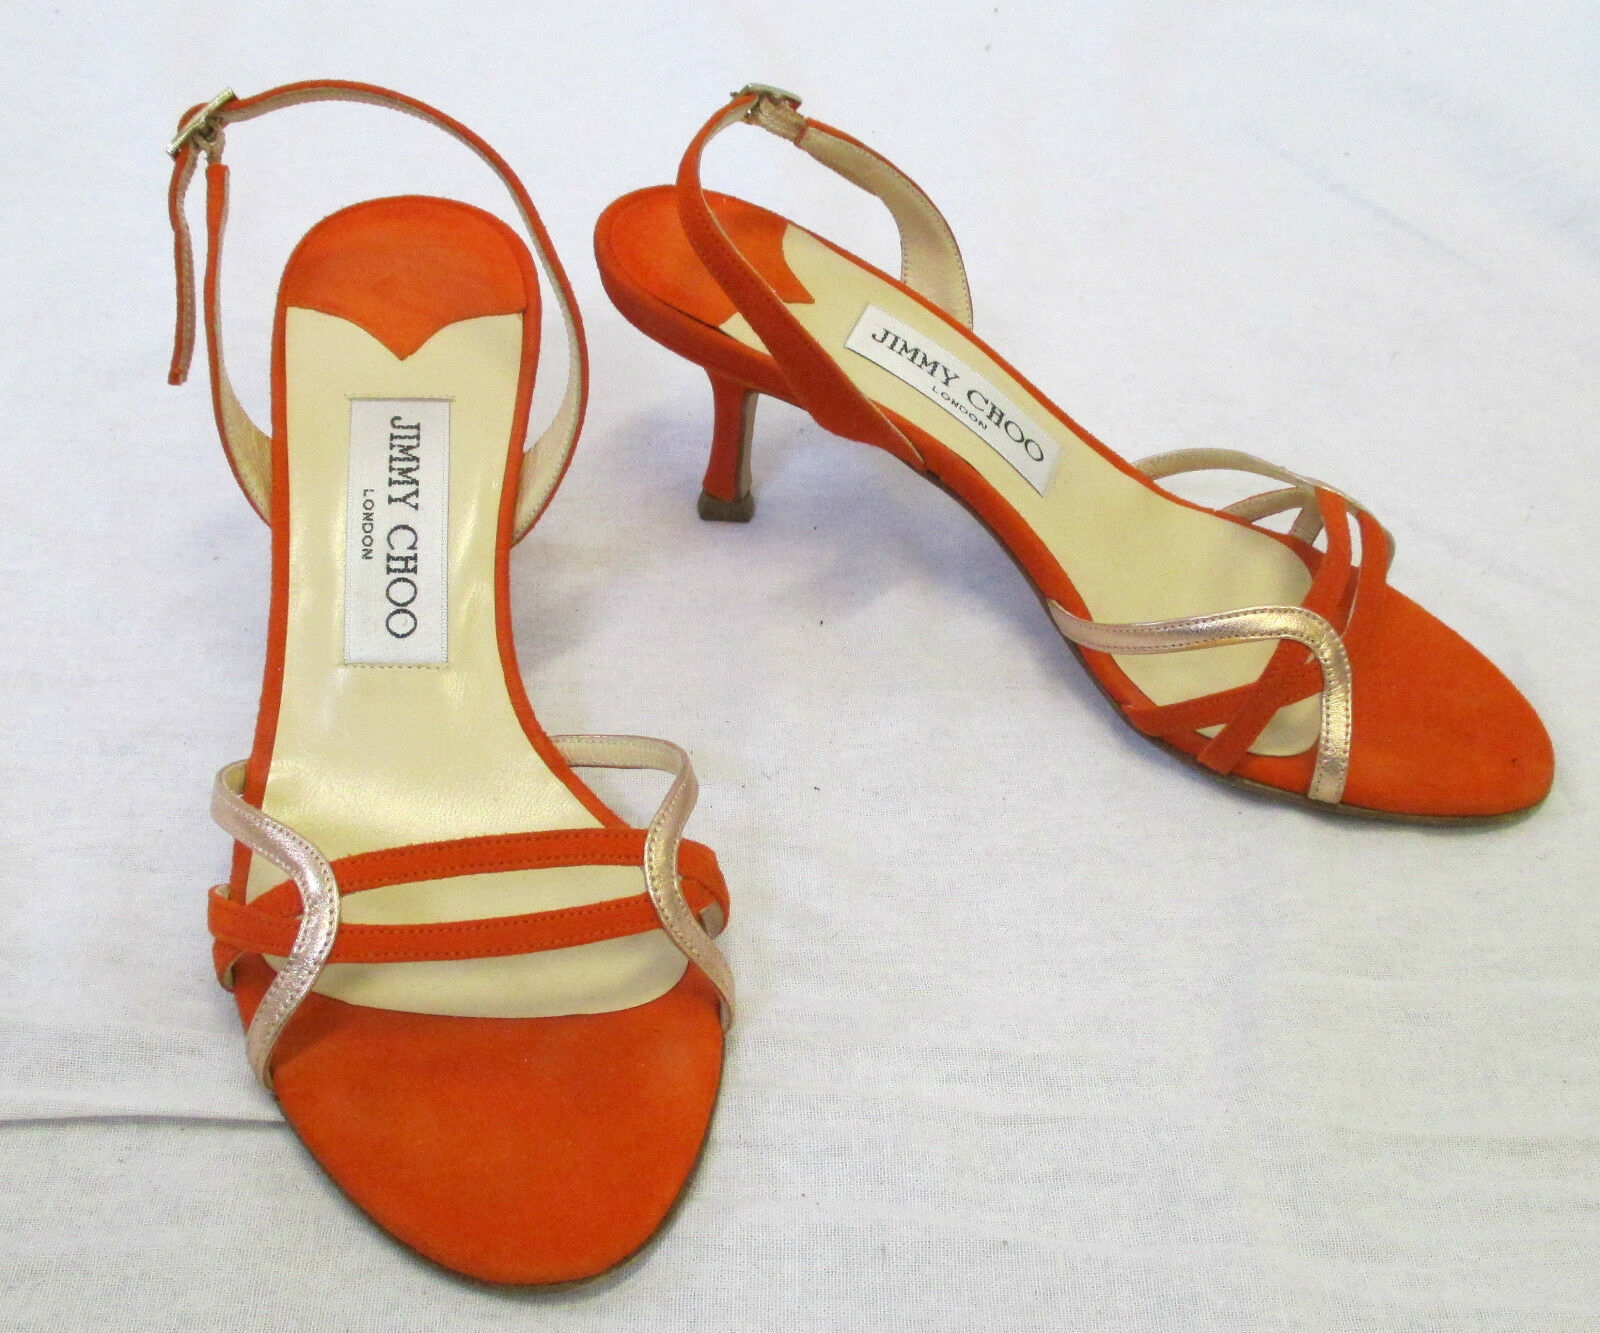 Primary image for JIMMY CHOO Orange Suede Slingback Sandals w/ Pink Gold Metallic Accents - 35